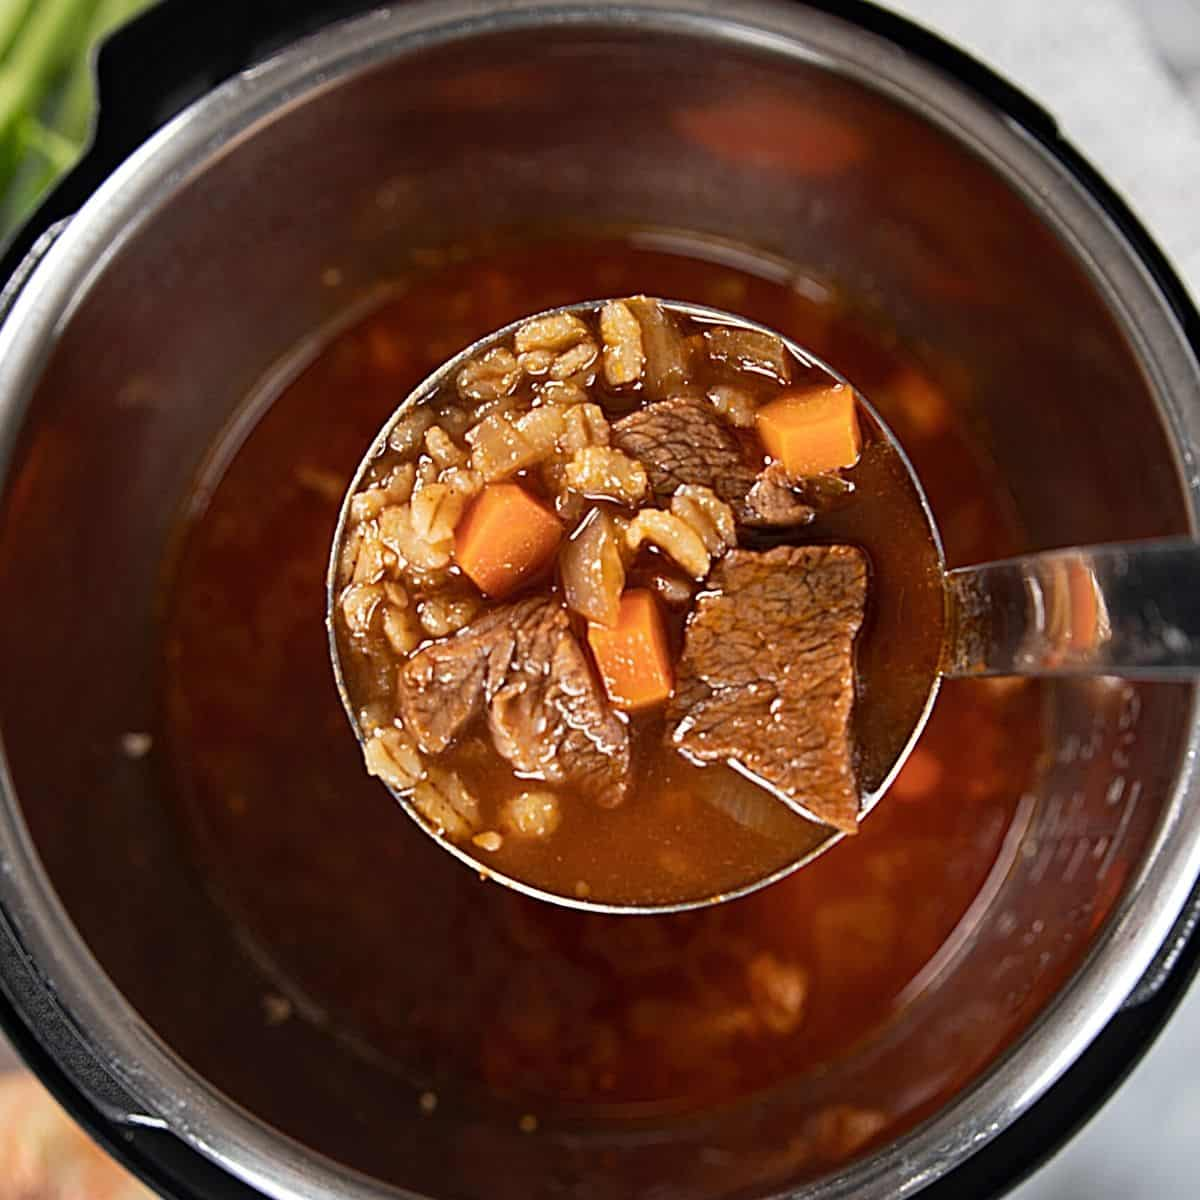 Ladle scooping out beef and barley soup from inner pot.